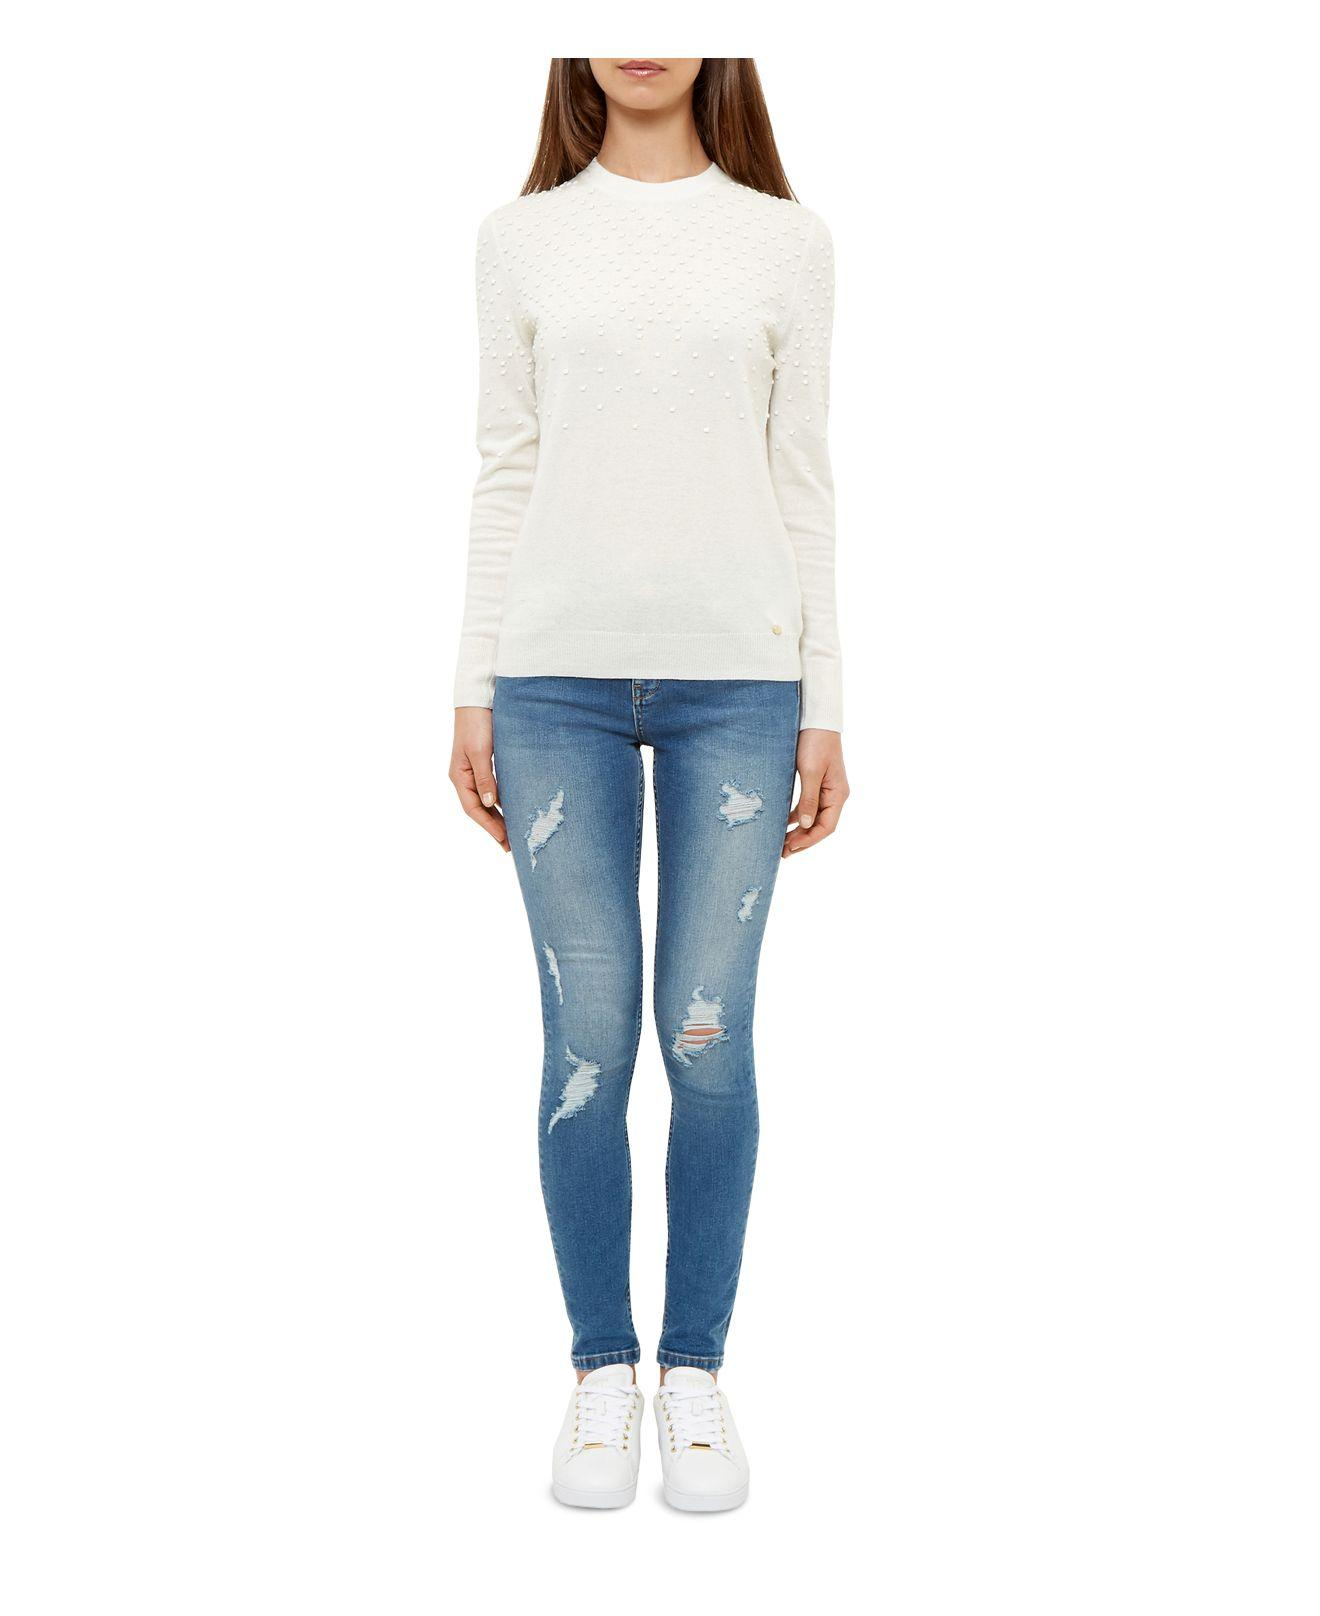 4f5048134a364 Lyst - Ted Baker Kimle Ripped Skinny Jeans In Mid Blue in Blue